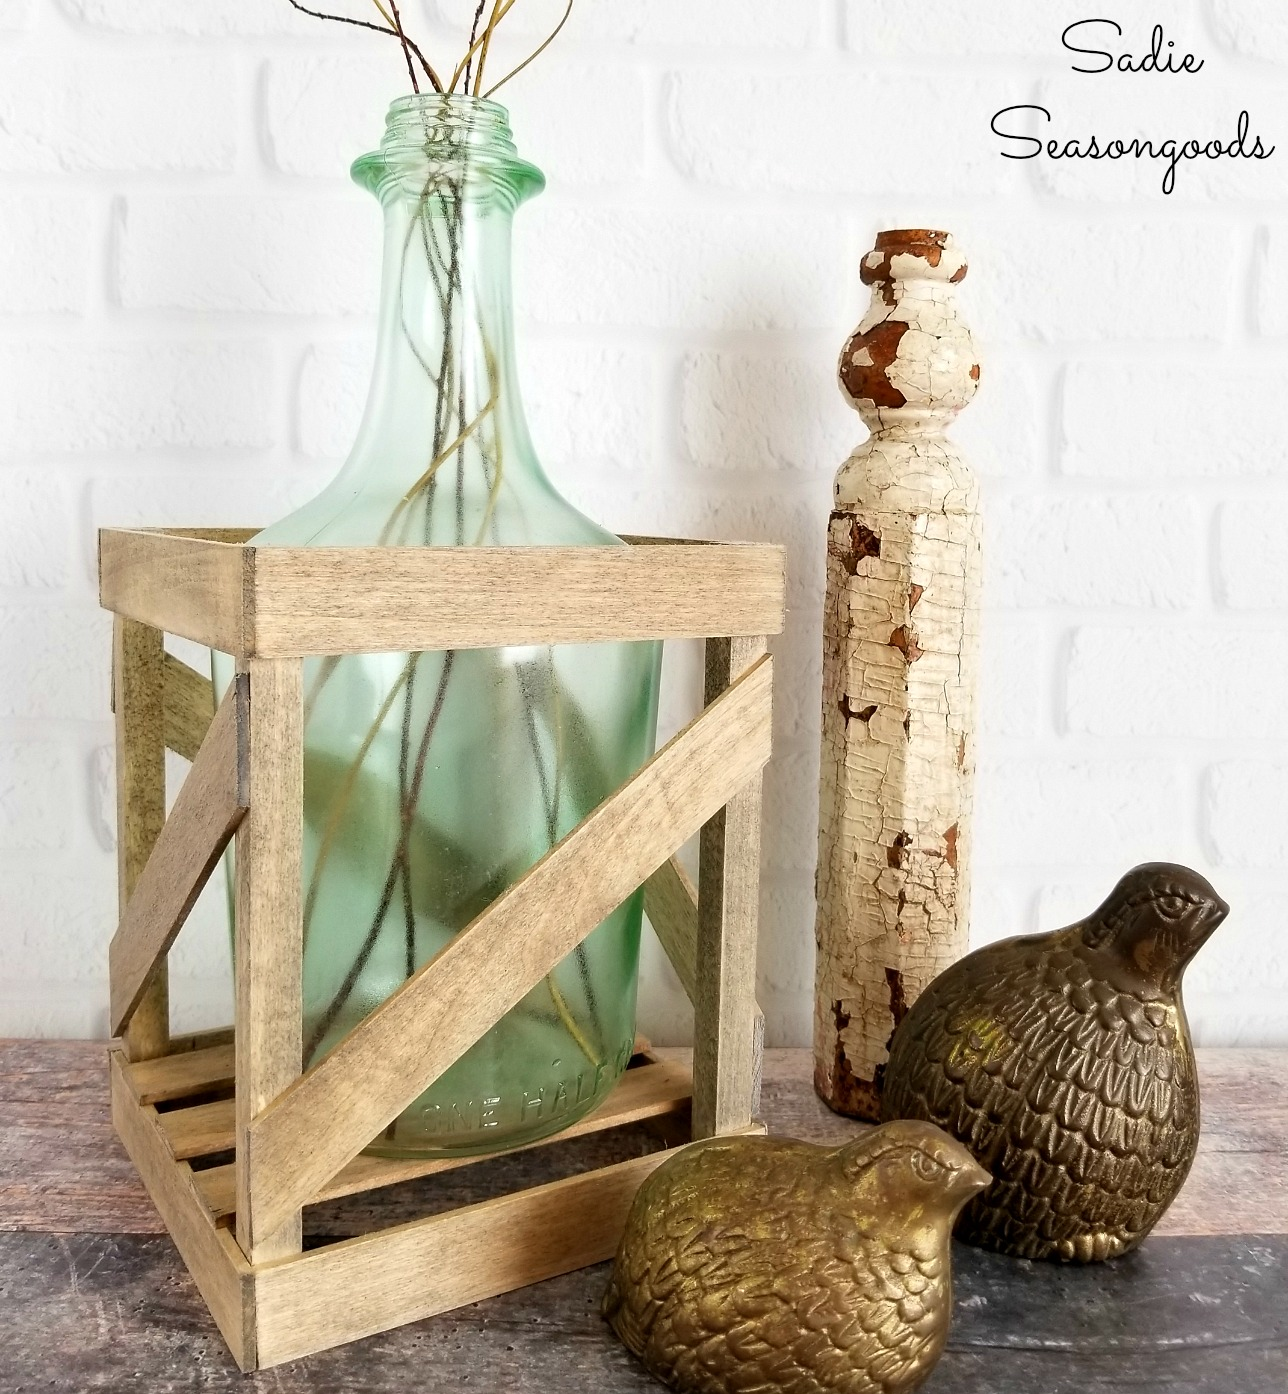 Demijohn Bottle in a Crate for French Farmhouse Decor